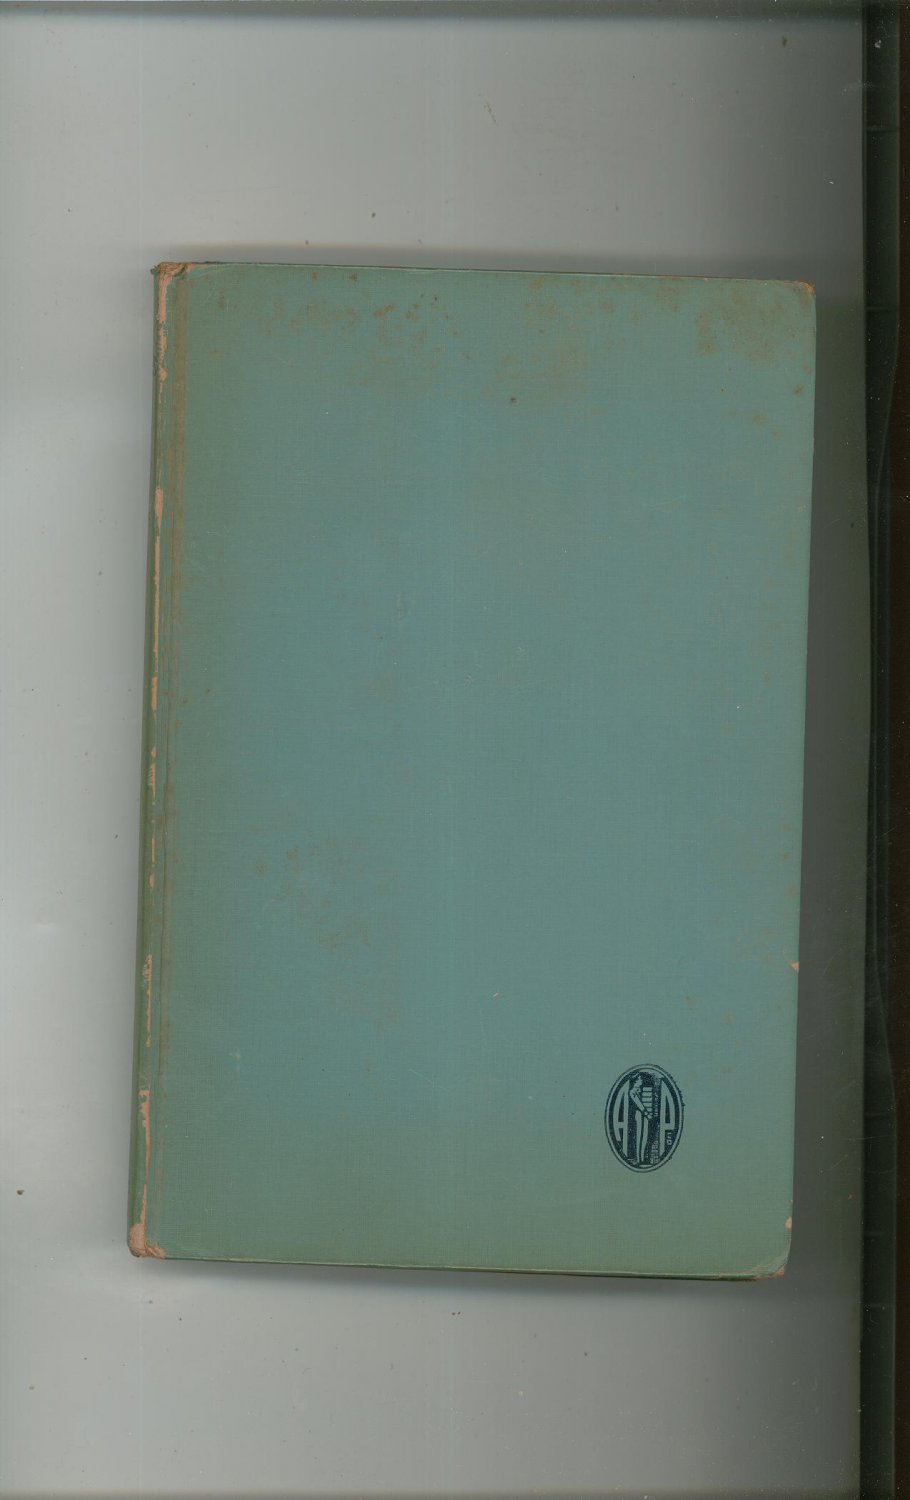 Pie Marches On Cookbook By Monroe Boston Strause Vintage 1951 Hard Cover